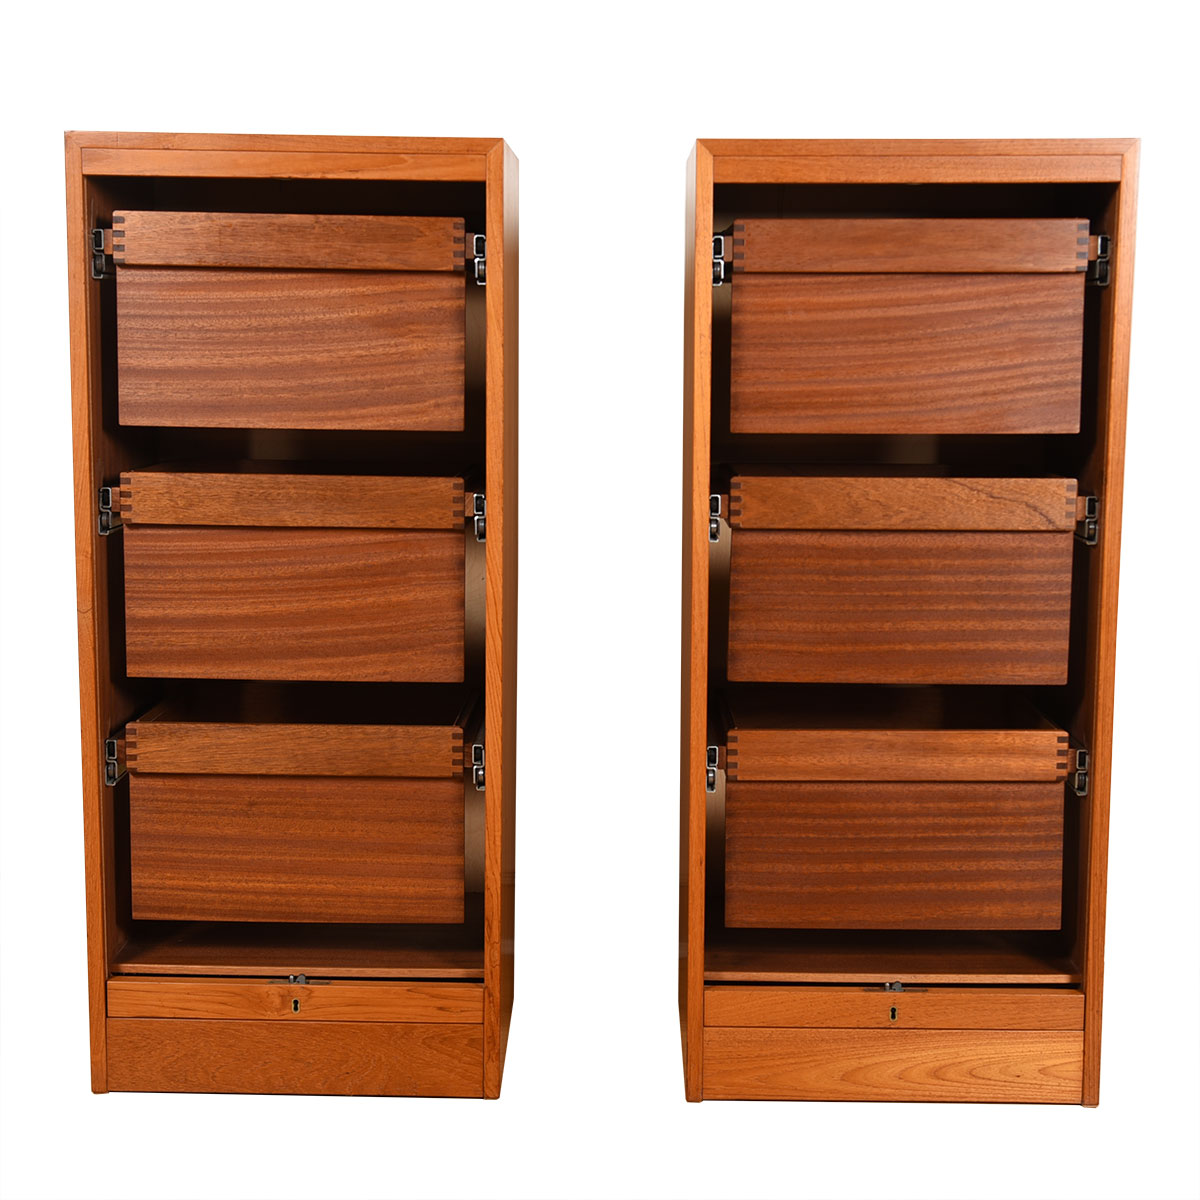 Pair of Tall Danish Modern Teak Locking Tambour Door Filing Cabinets